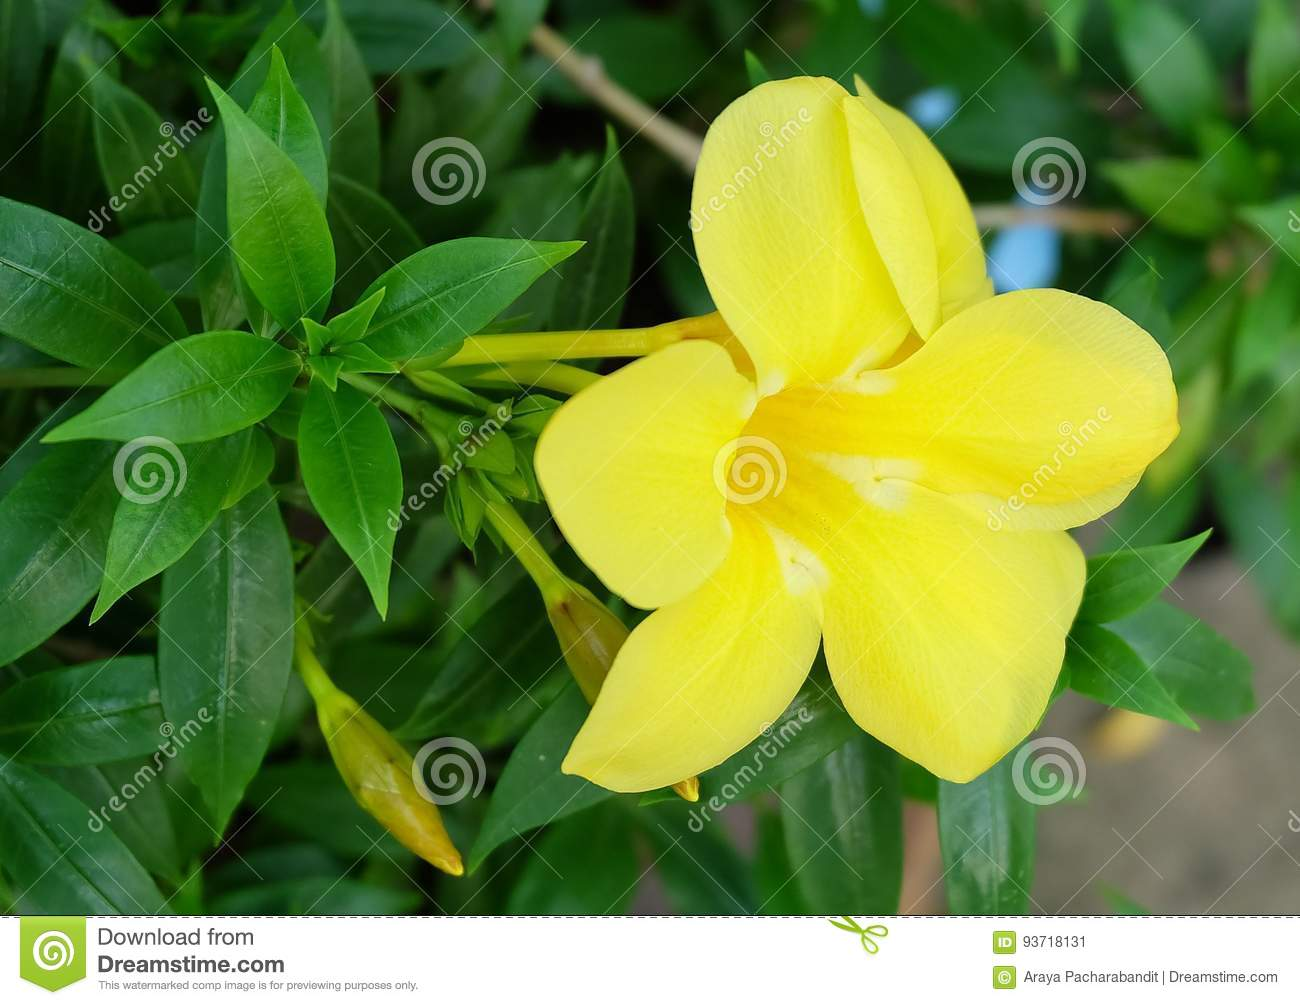 Yellow sage rose flowers with green leaves stock image image of yellow sage rose flowers with green leaves mightylinksfo